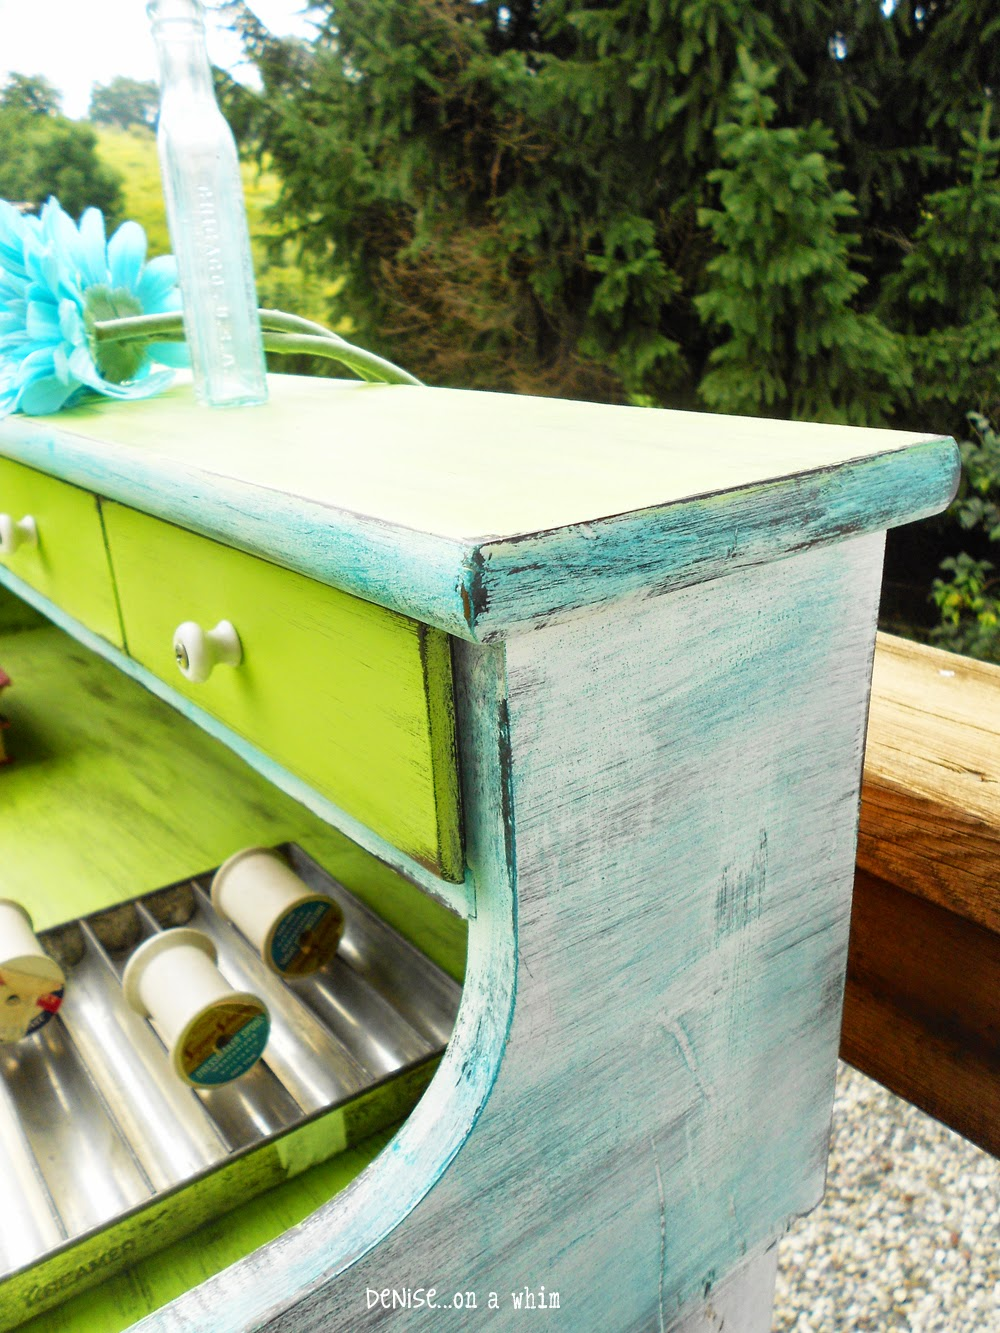 Dry-brushed teal blue over white on a dry sink makeover from Denise On a Whim